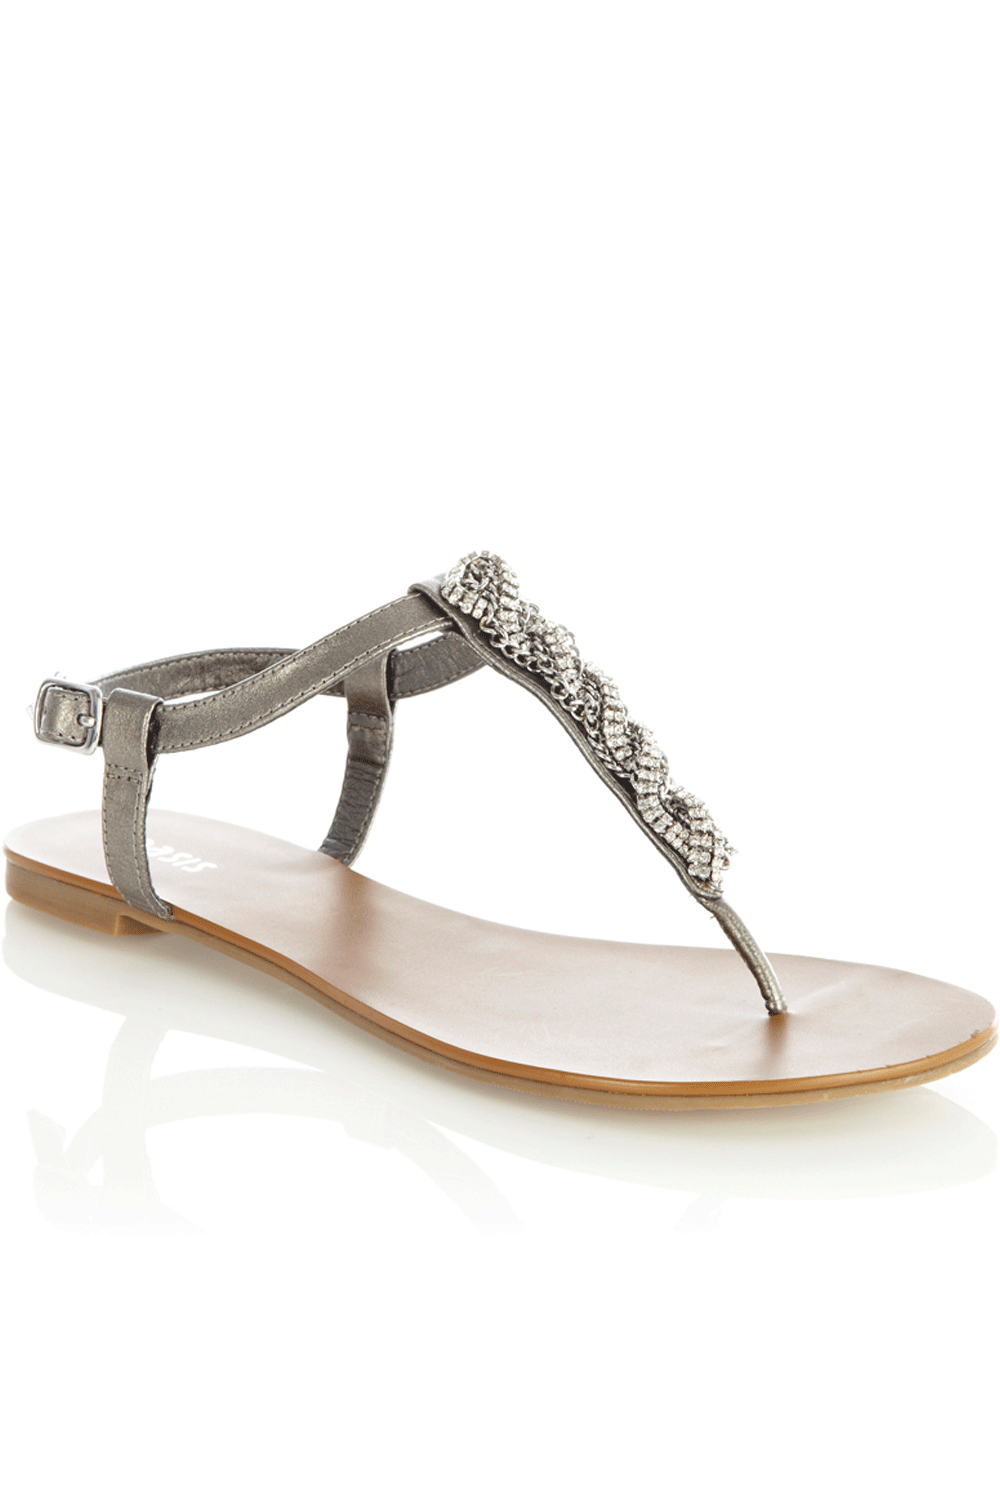 Chain Toepost Sandals - predominant colour: charcoal; material: faux leather; heel height: flat; embellishment: beading, crystals, jewels, sequins; ankle detail: ankle strap; heel: standard; toe: toe thongs; style: strappy